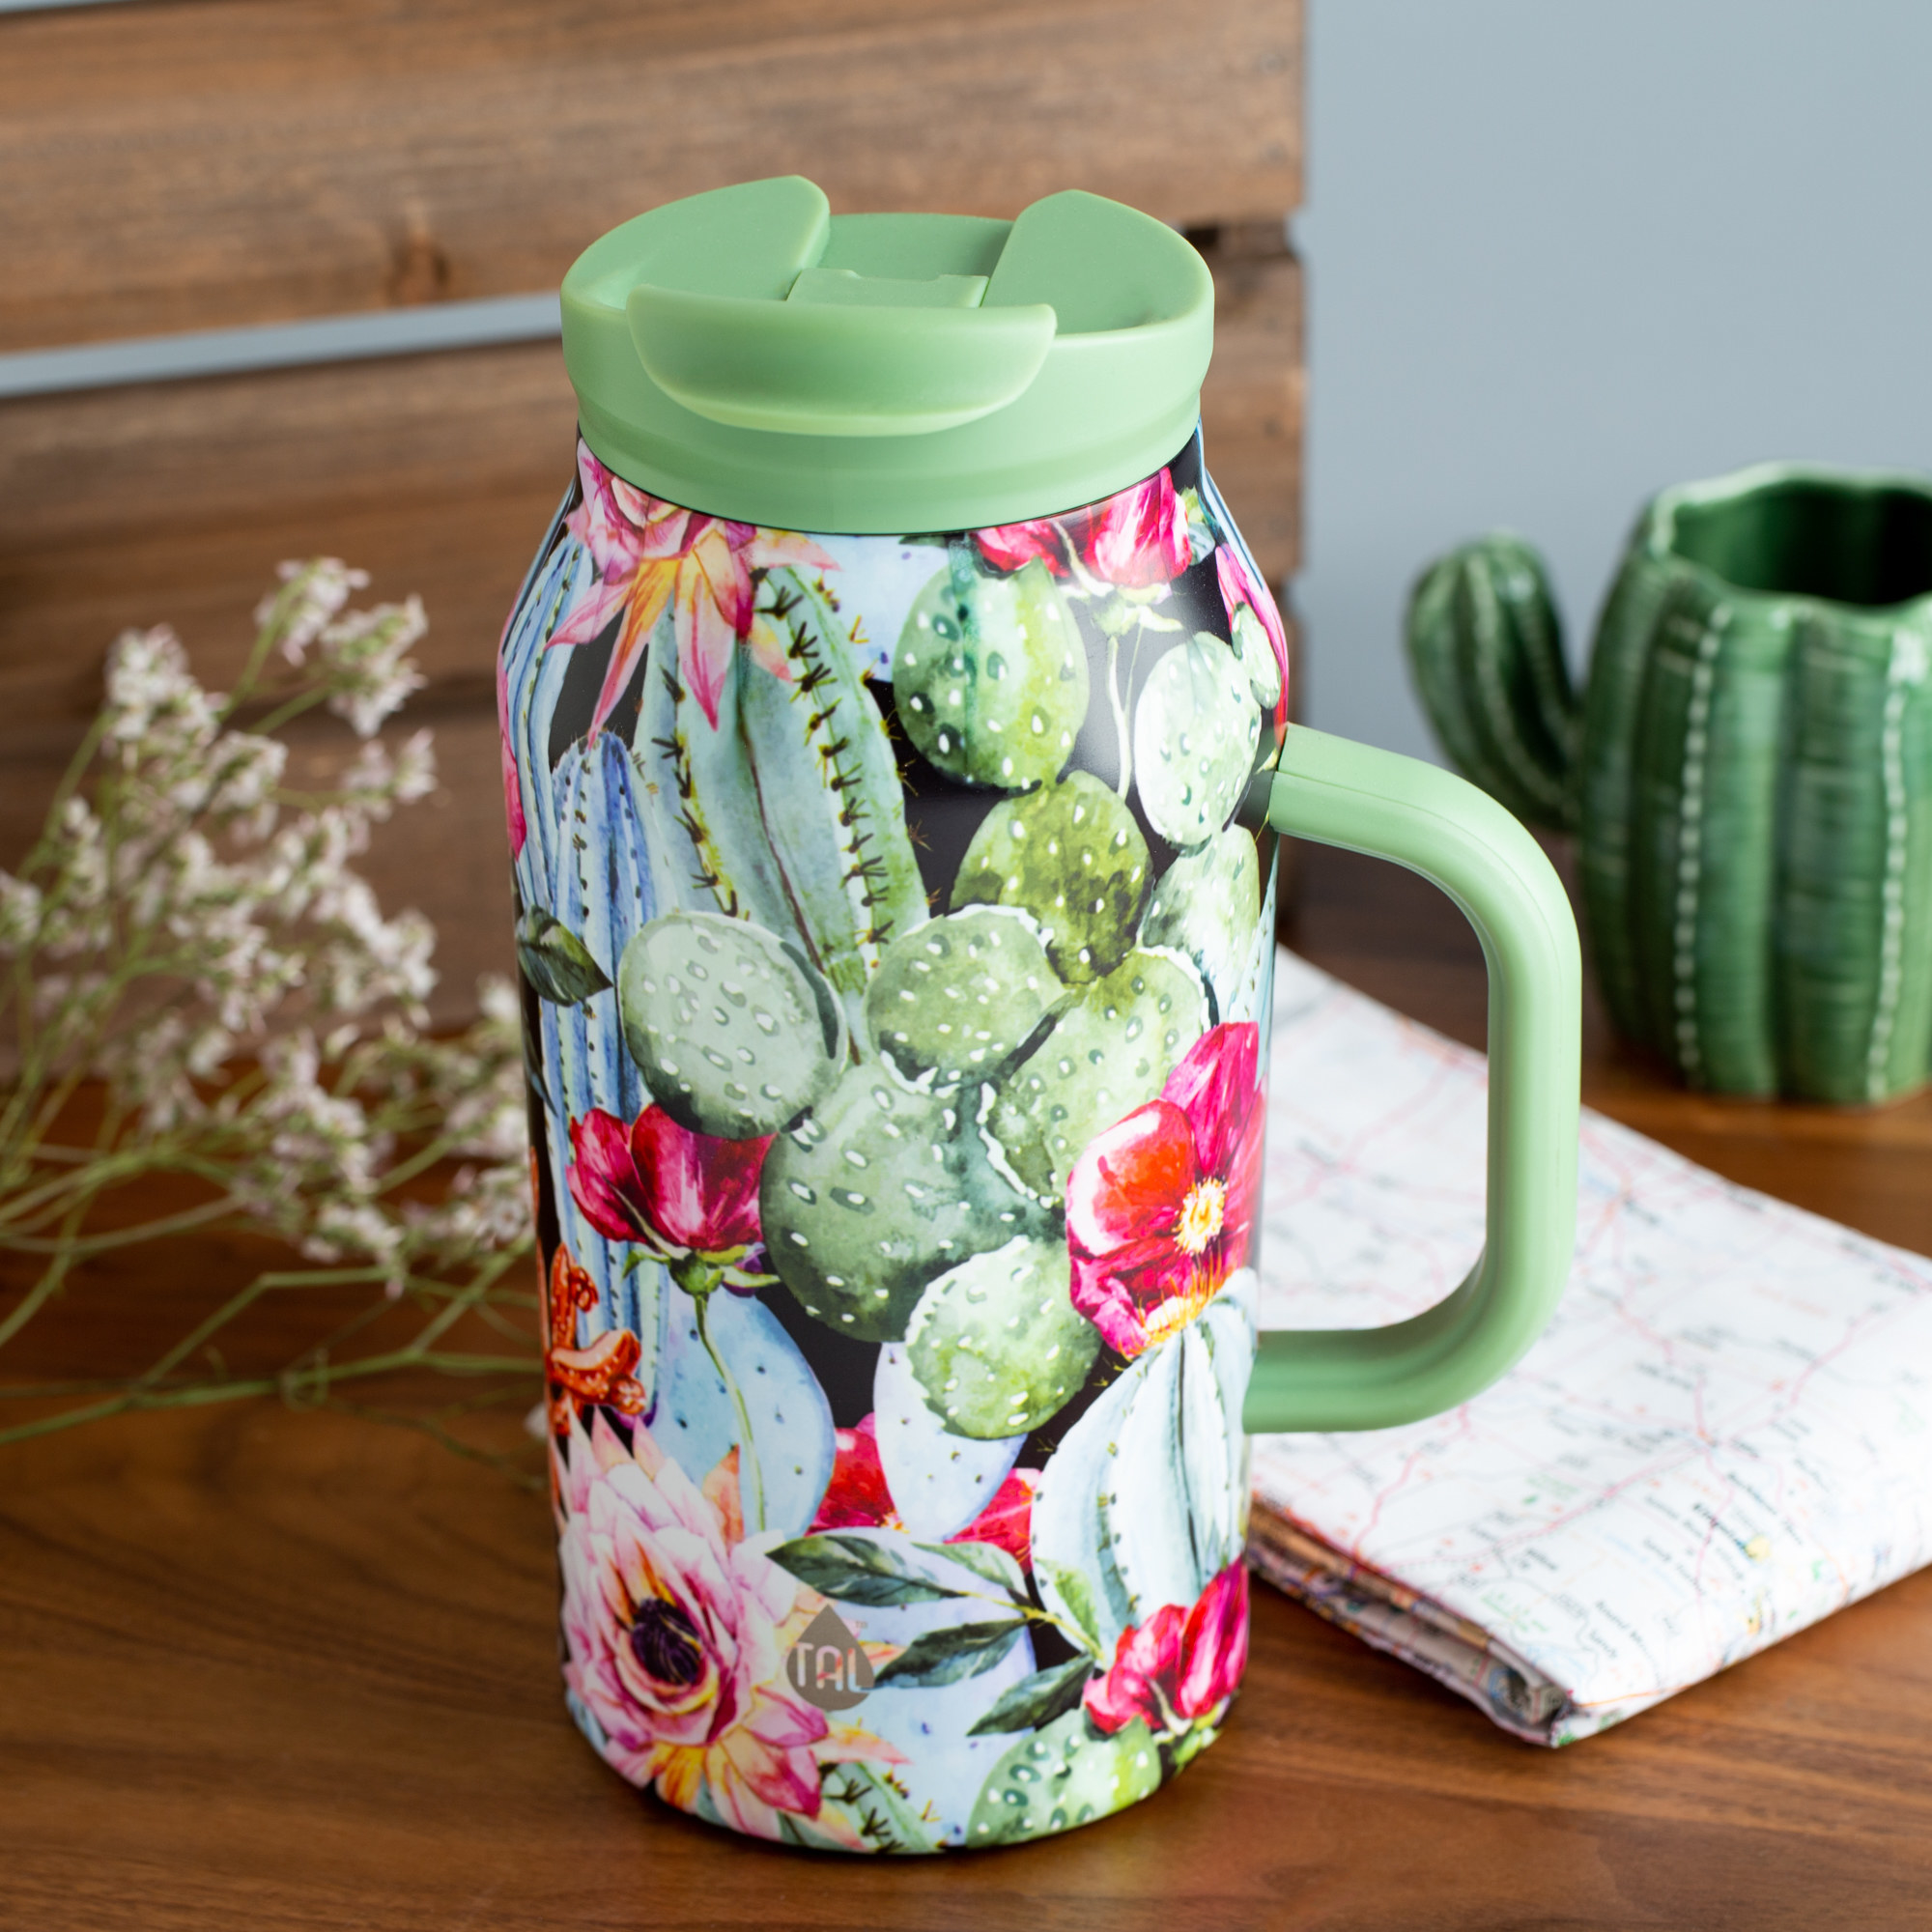 The cactus themed water bottle